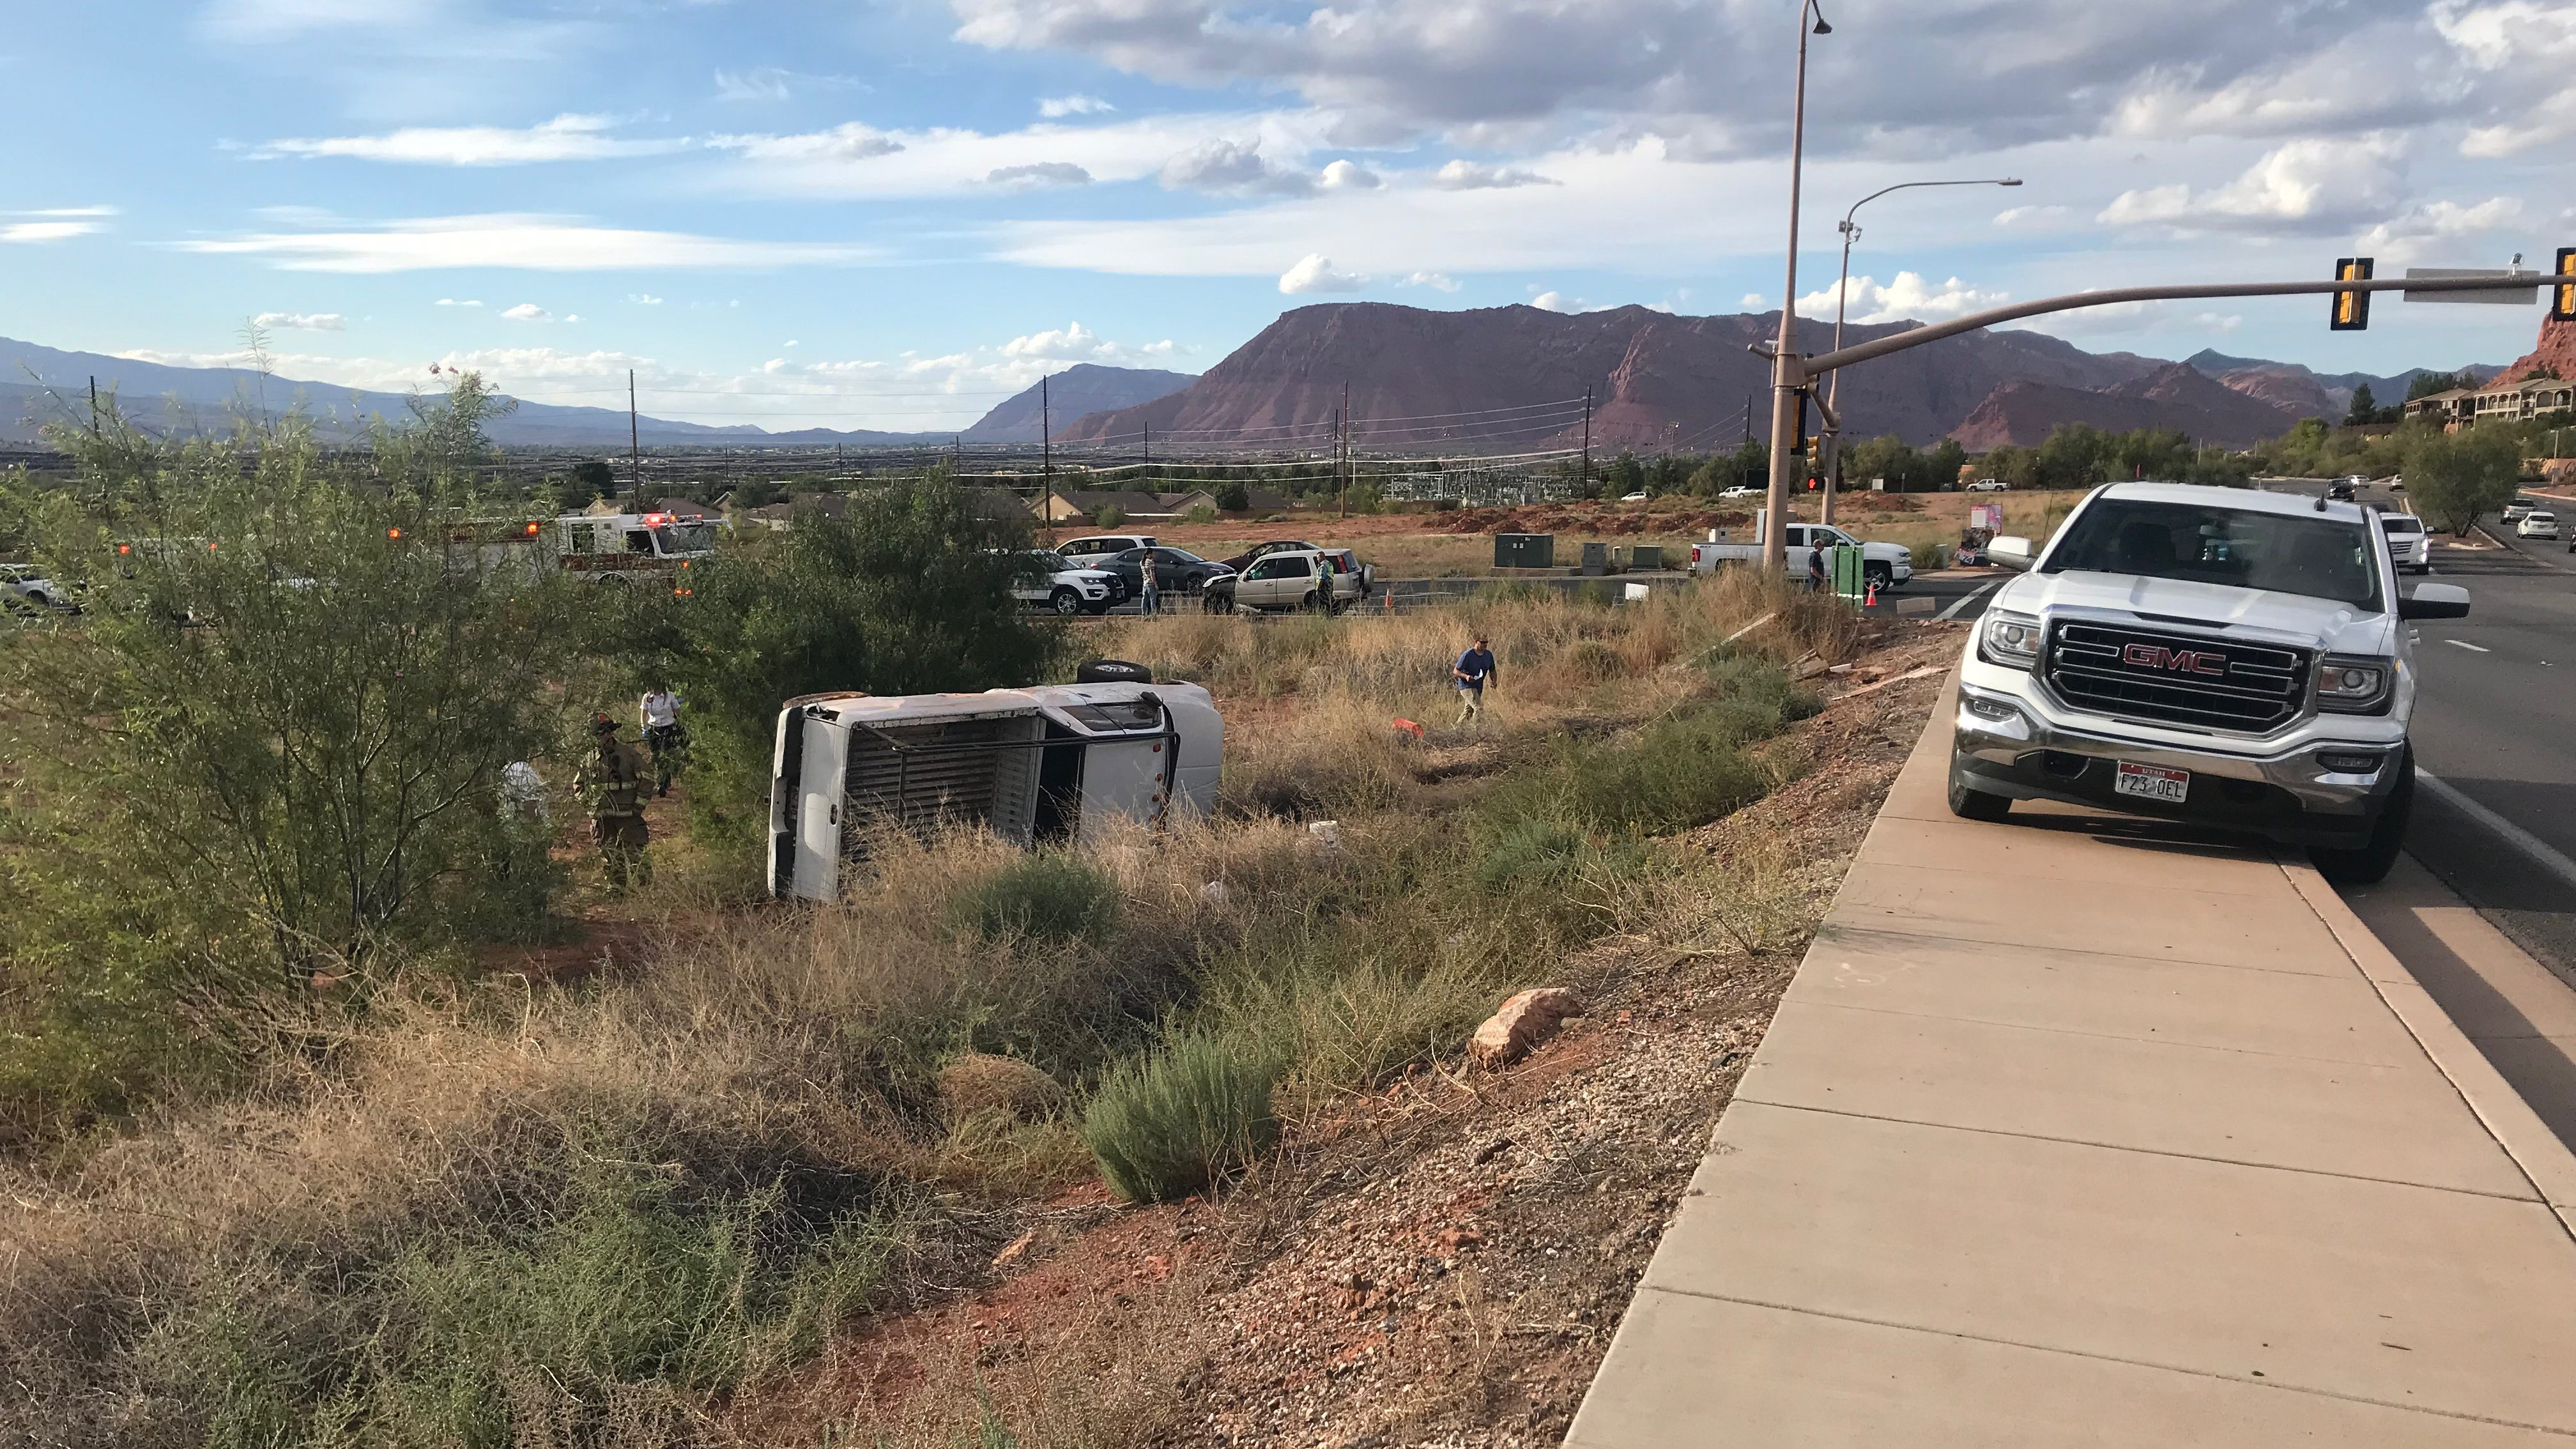 Bystanders help pull man from overturned pickup truck after crash ...